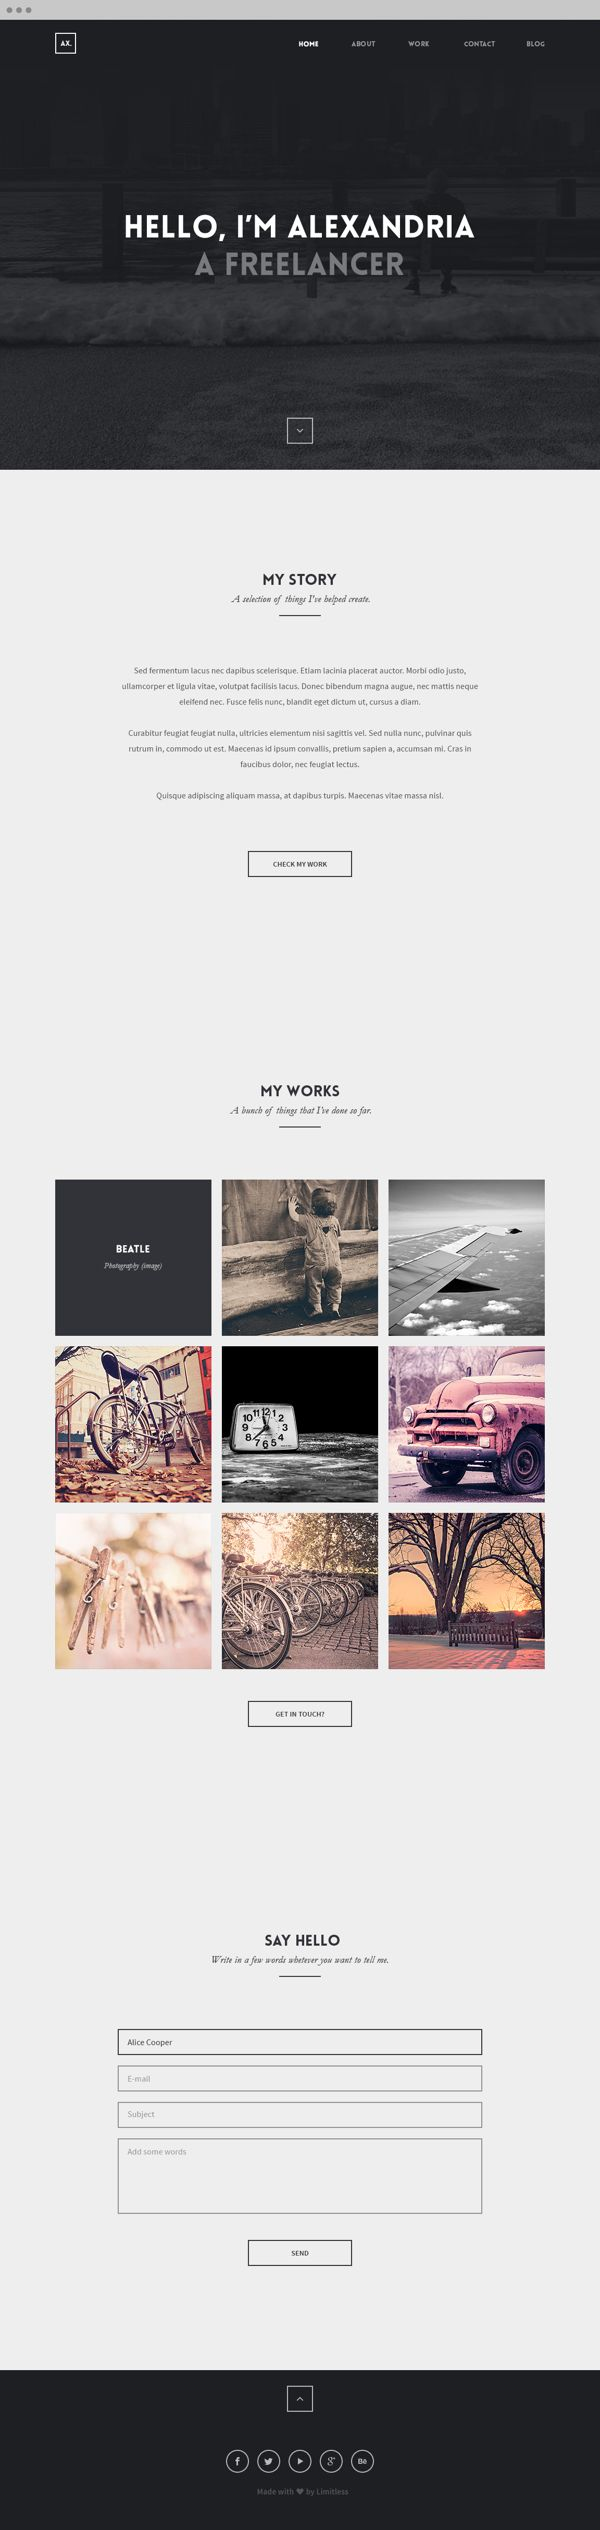 Alexandria - OnePage Creative Portfolio by Ismail MESBAH, via Behance  www.lab333.com  https://www.facebook.com/pages/LAB-STYLE/585086788169863  http://www.labs333style.com  www.lablikes.tumblr.com  www.pinterest.com/labstyle